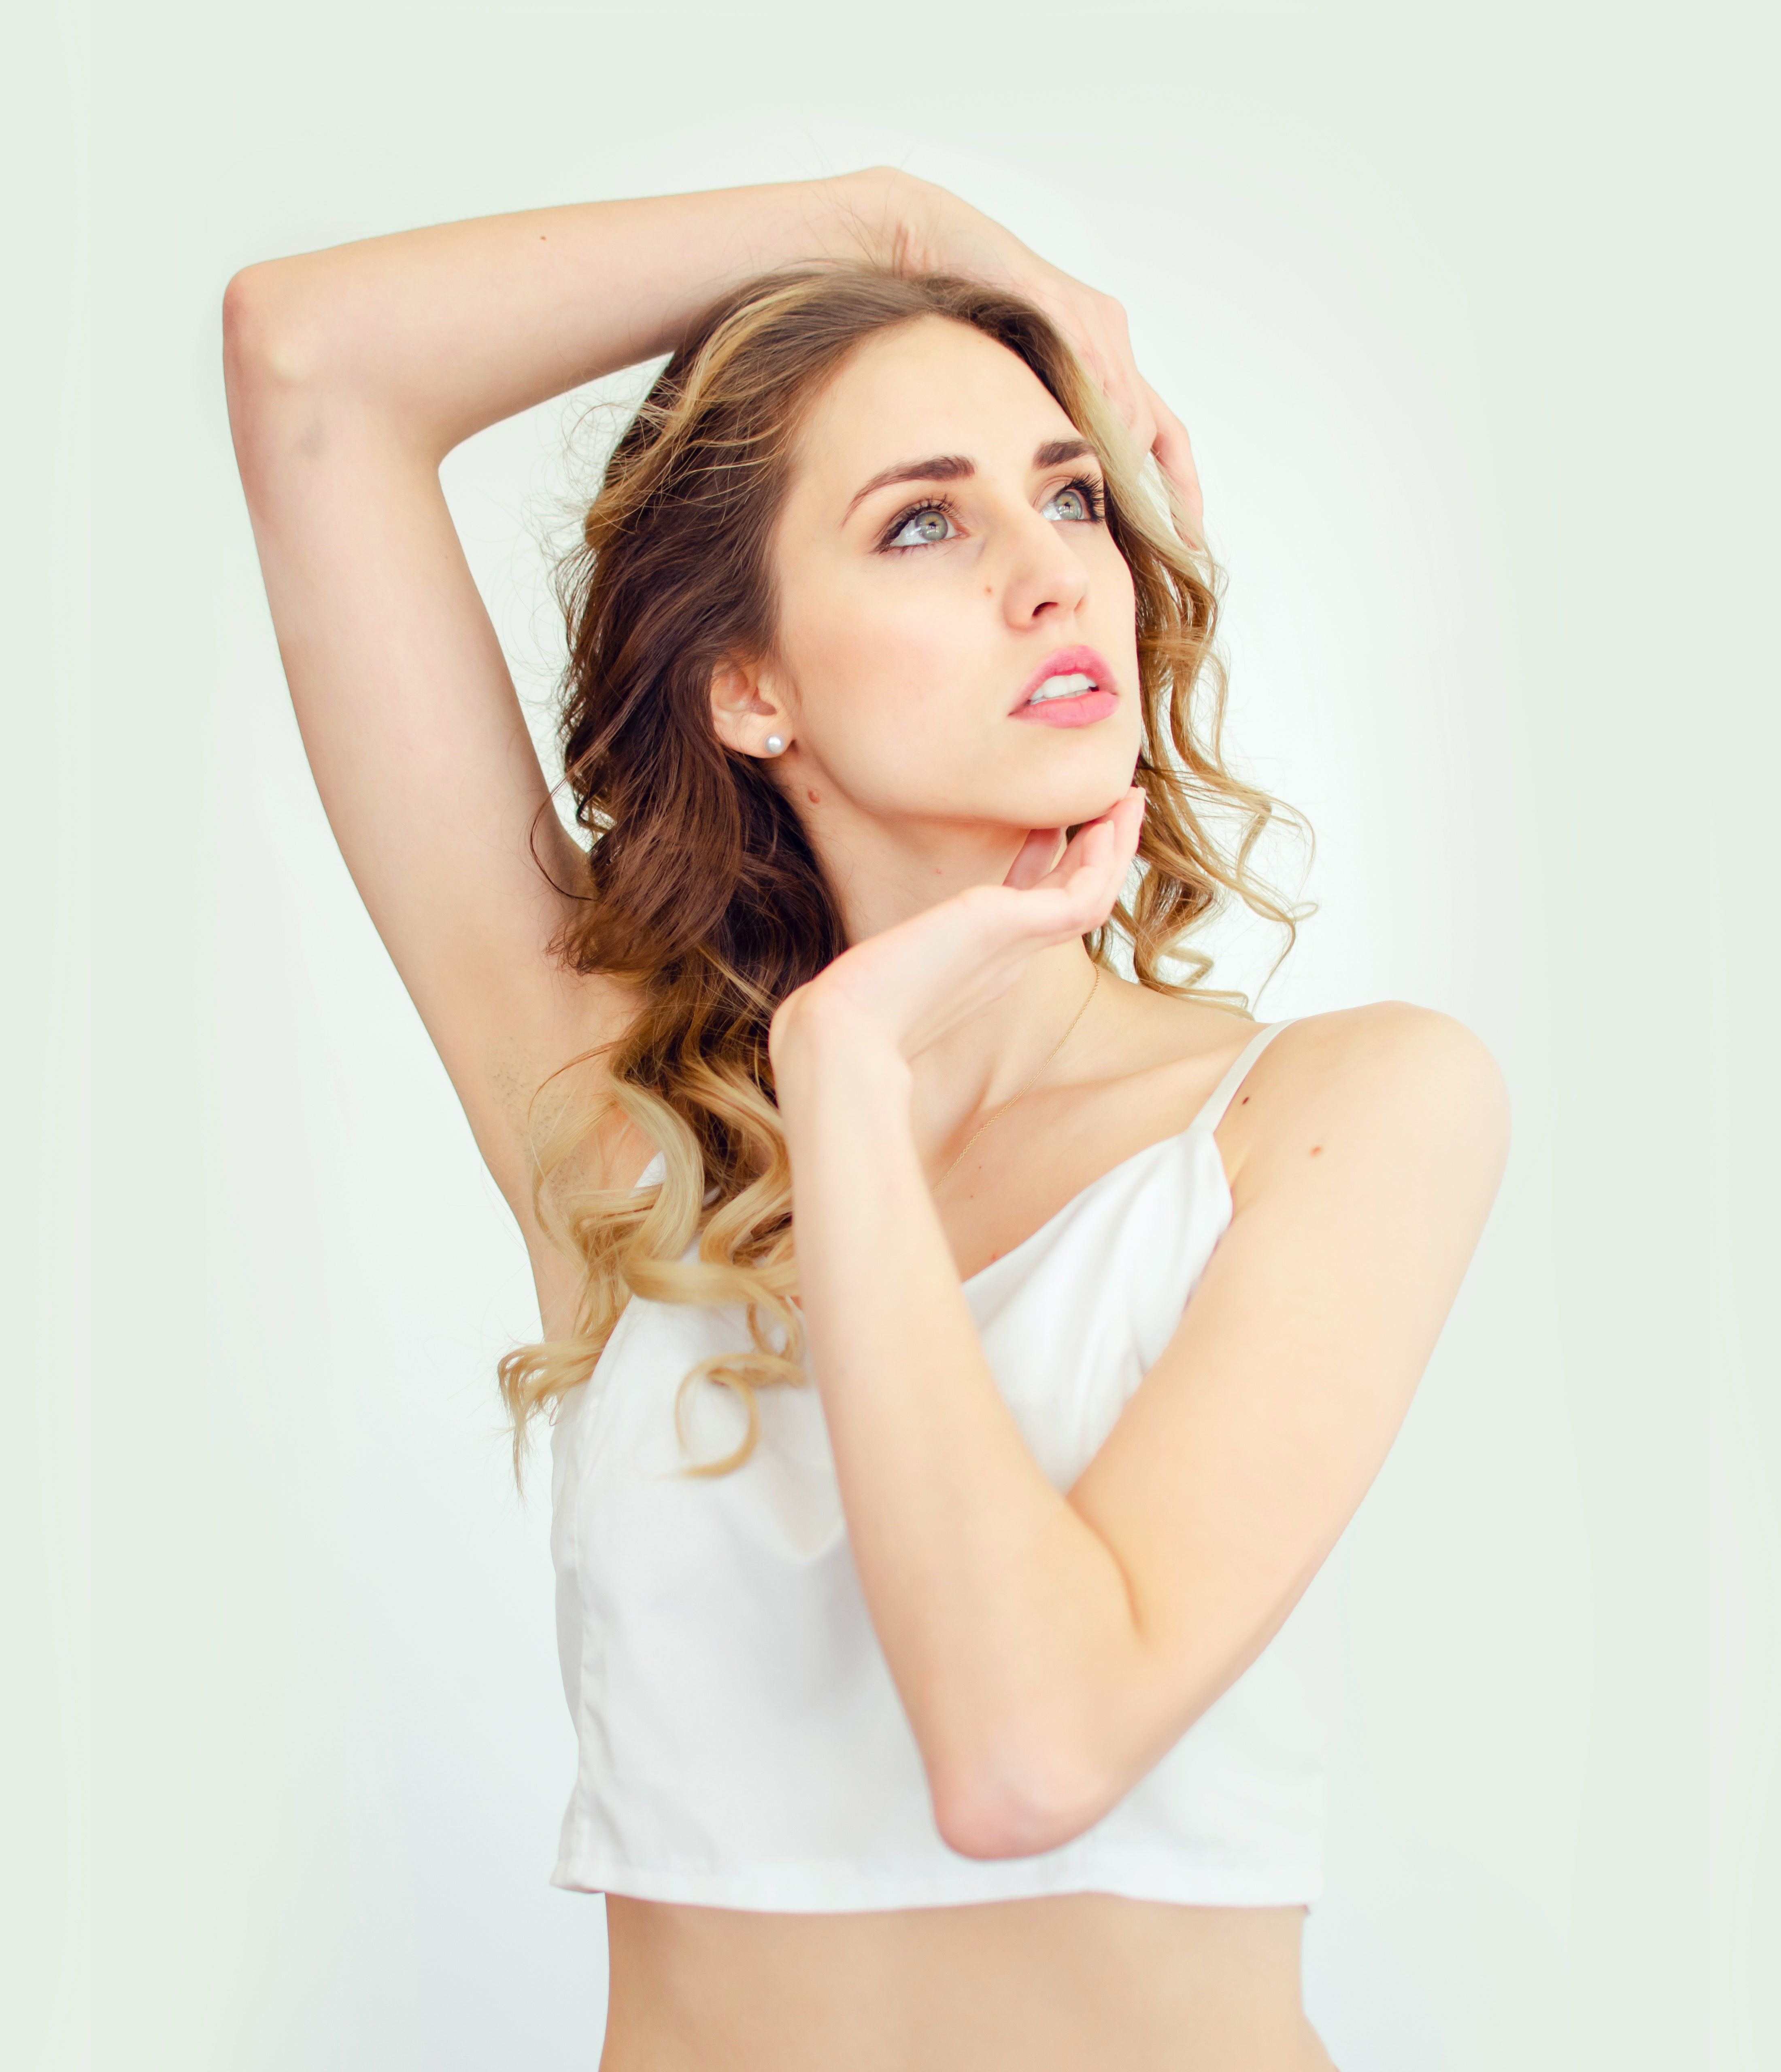 a woman raising her arm with smooth underarm area after using depilatory cream